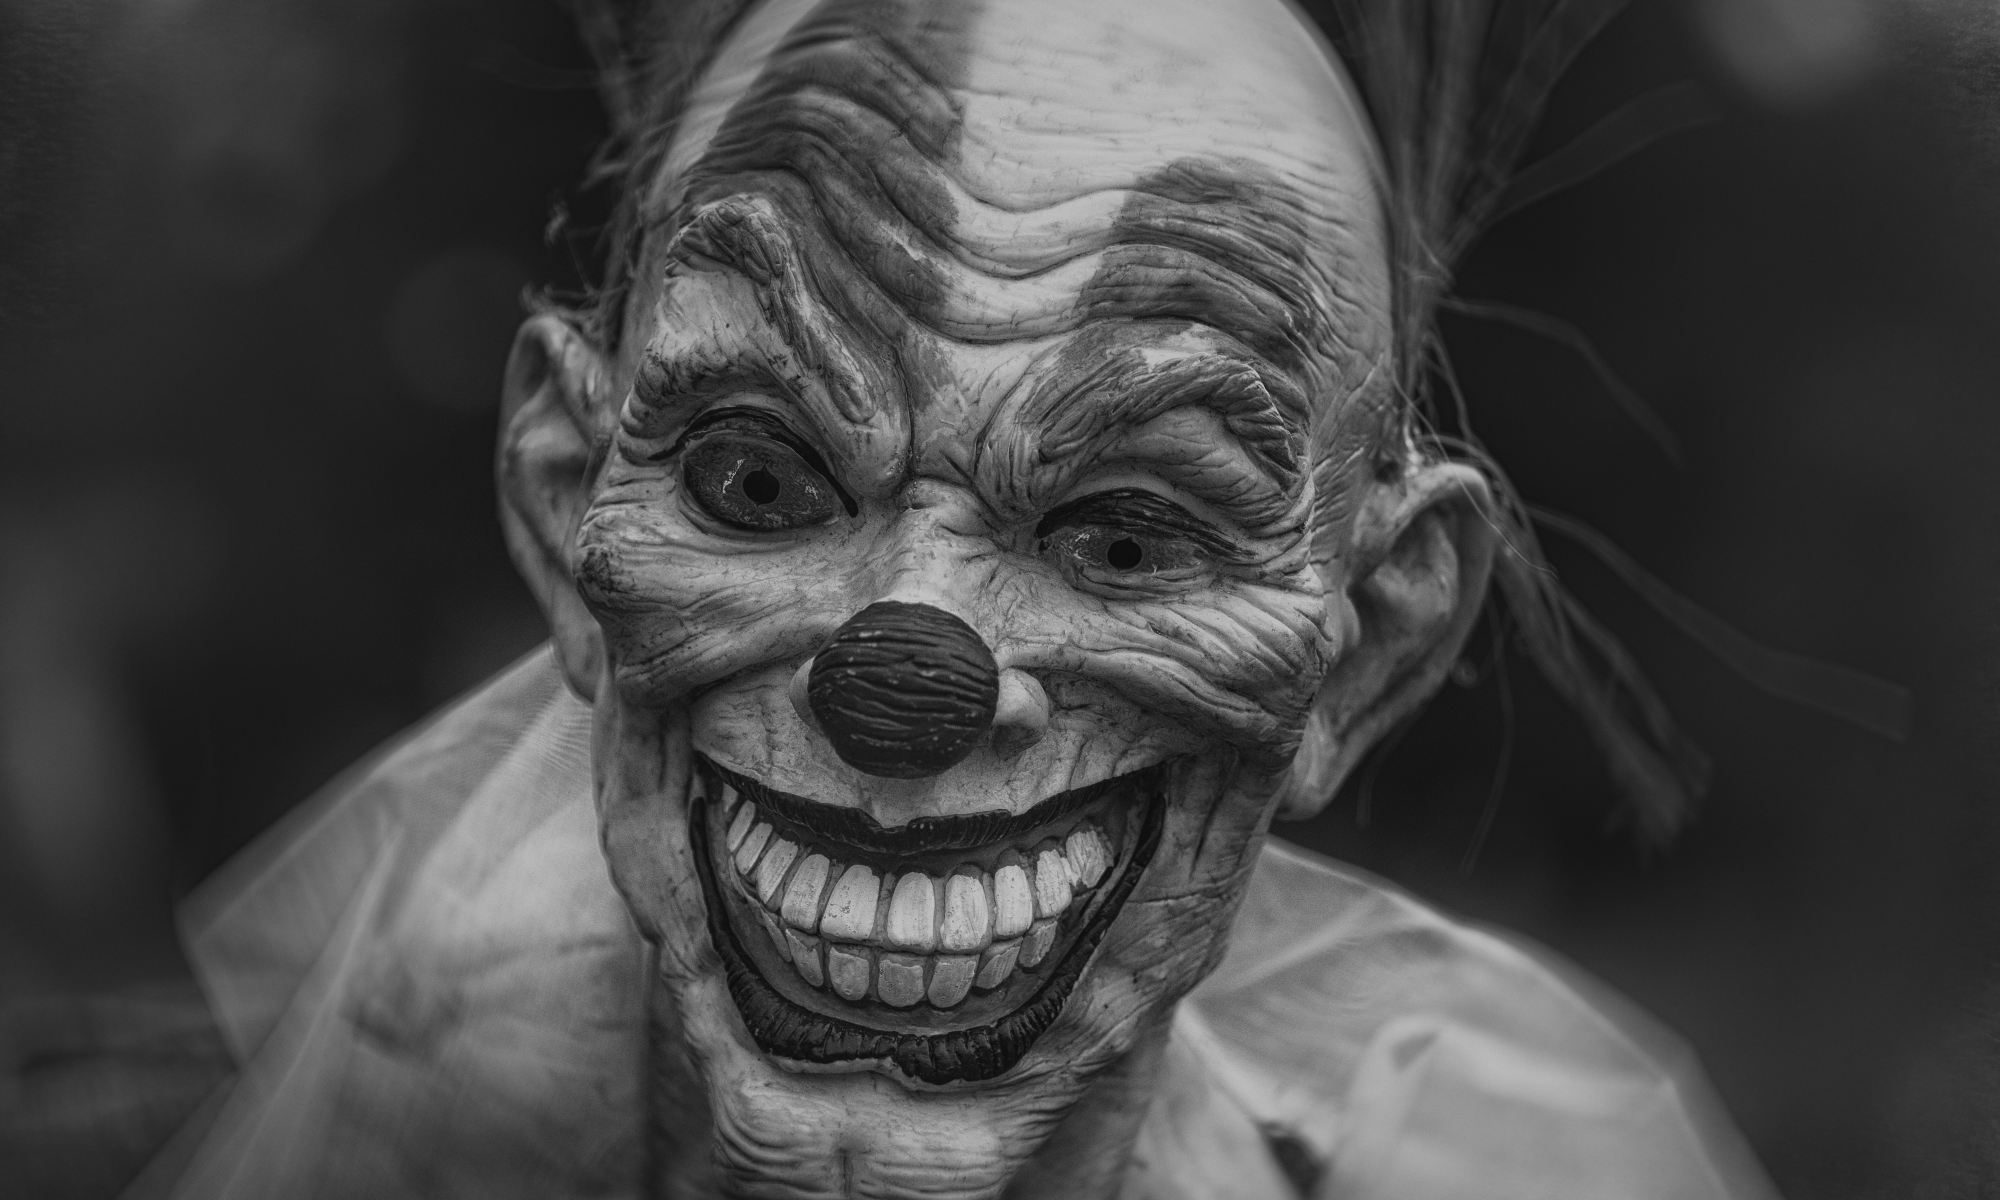 Grayscale photography of annoying person wearing clown mask